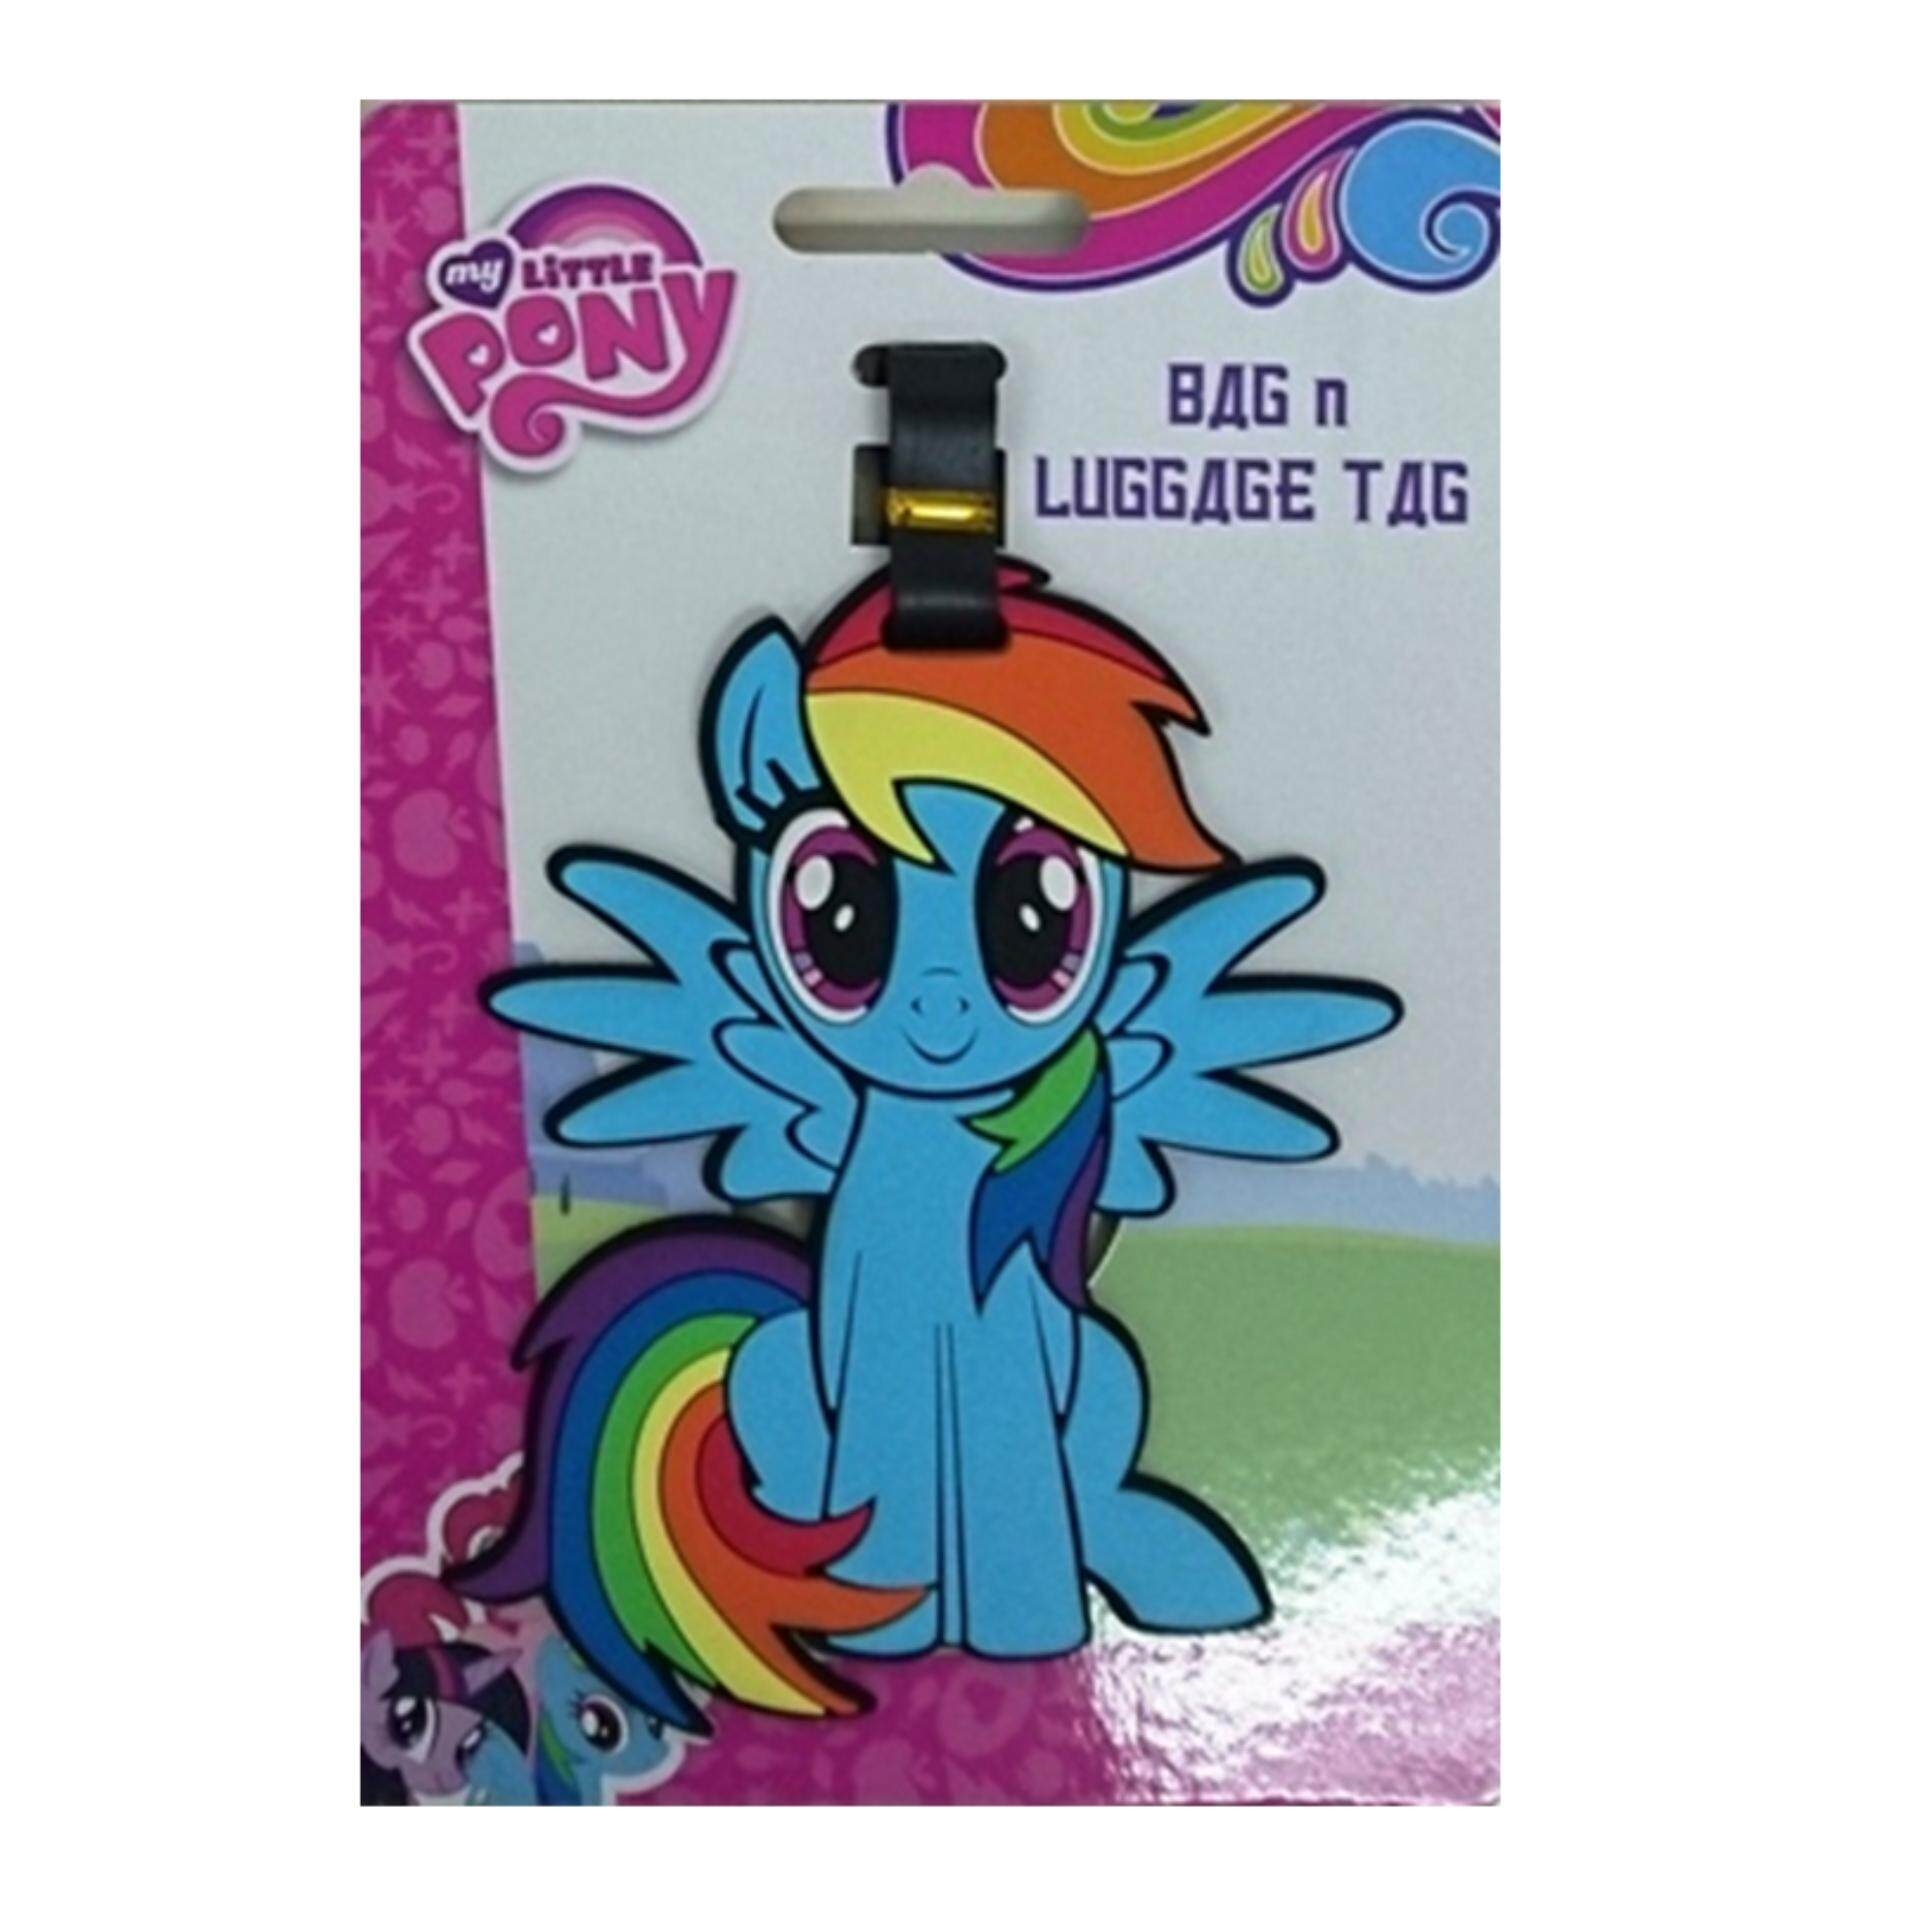 My Little Pony Luggage Tag - Blue Rainbow Dash